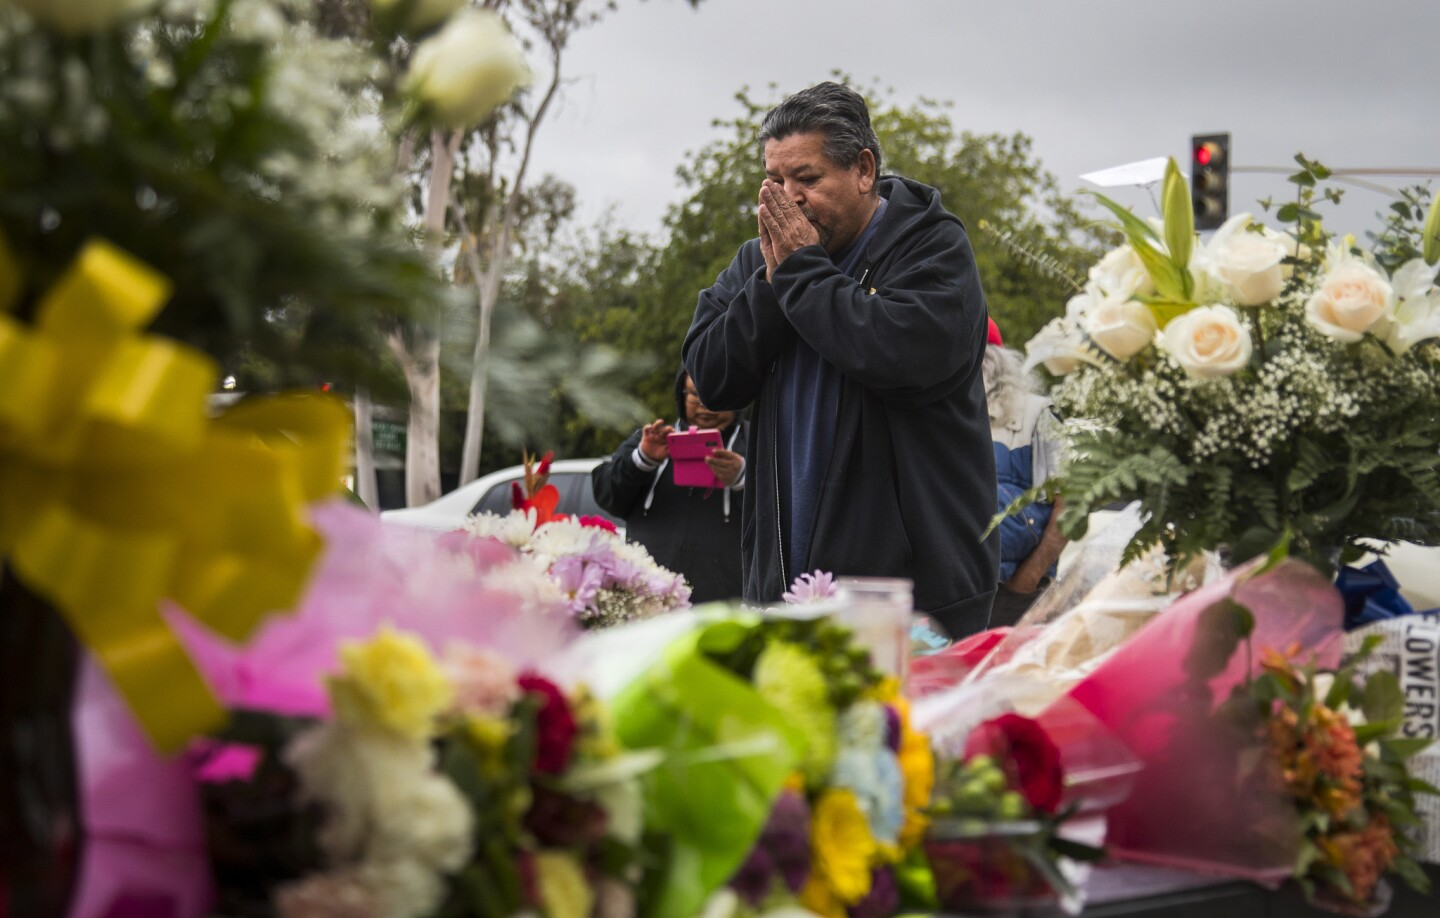 Peter Garcia of Pomona prays at a memorial in front of the Pomona Police Department for fallen Pomona Police Officer Gregory Casillas.